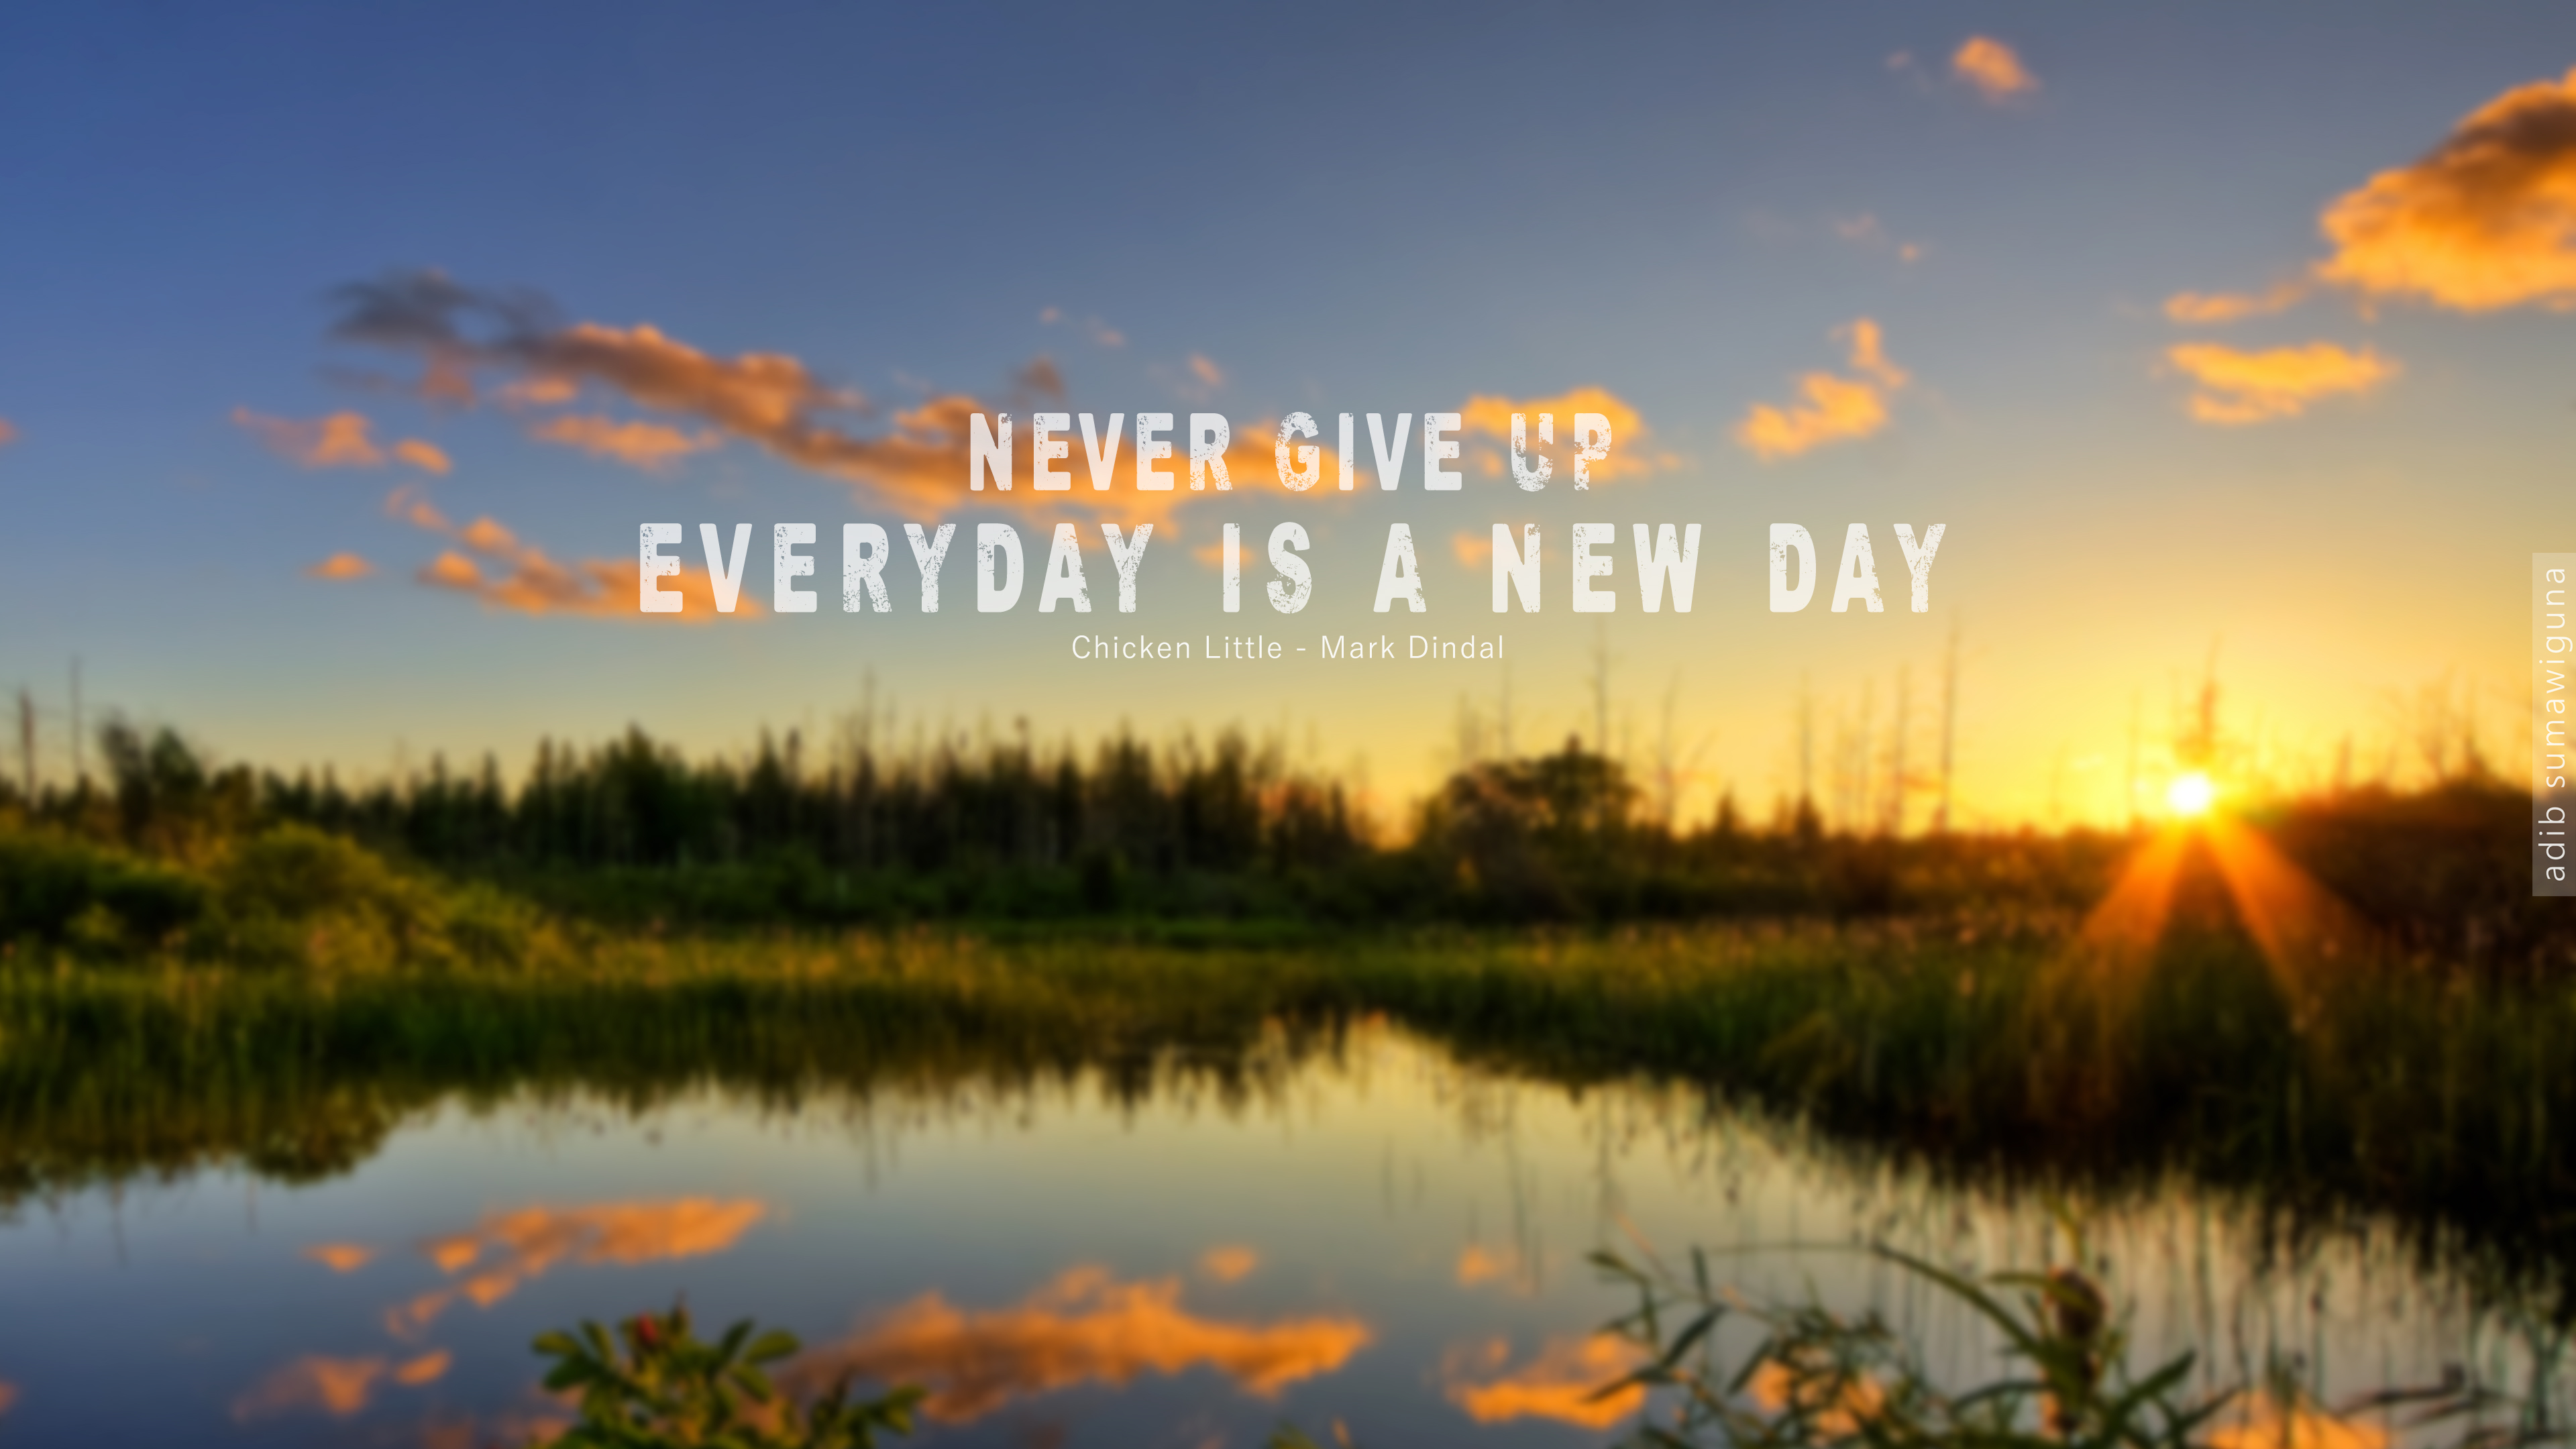 Never give up hd wallpaper by adib 27 on deviantart - Never give up wallpapers desktop hd ...